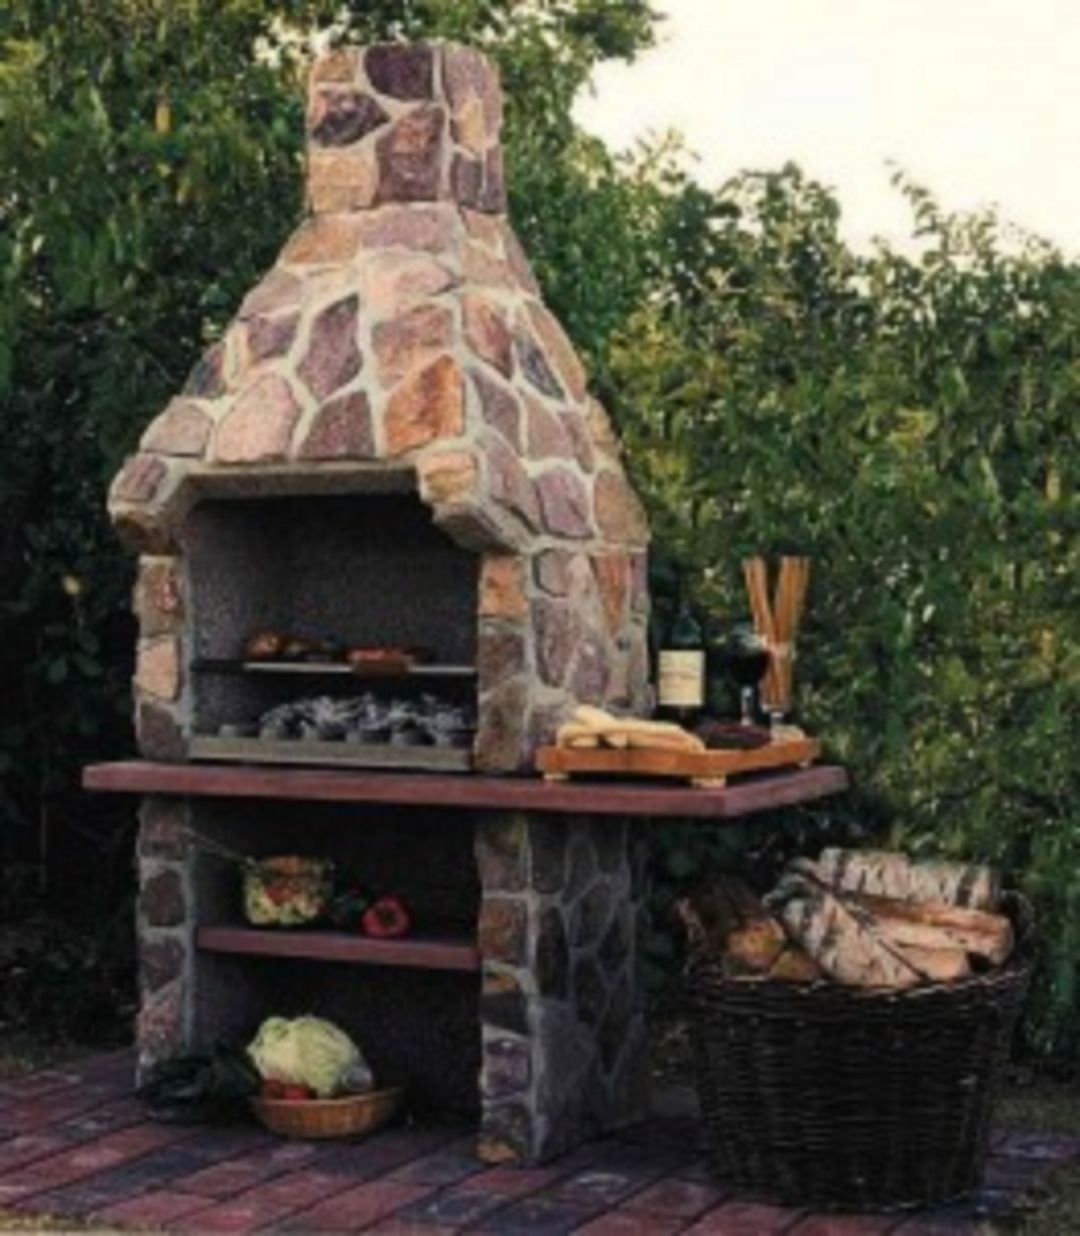 Home grill design bilder  marvelous rustic outdoor fireplace designs for your barbecue